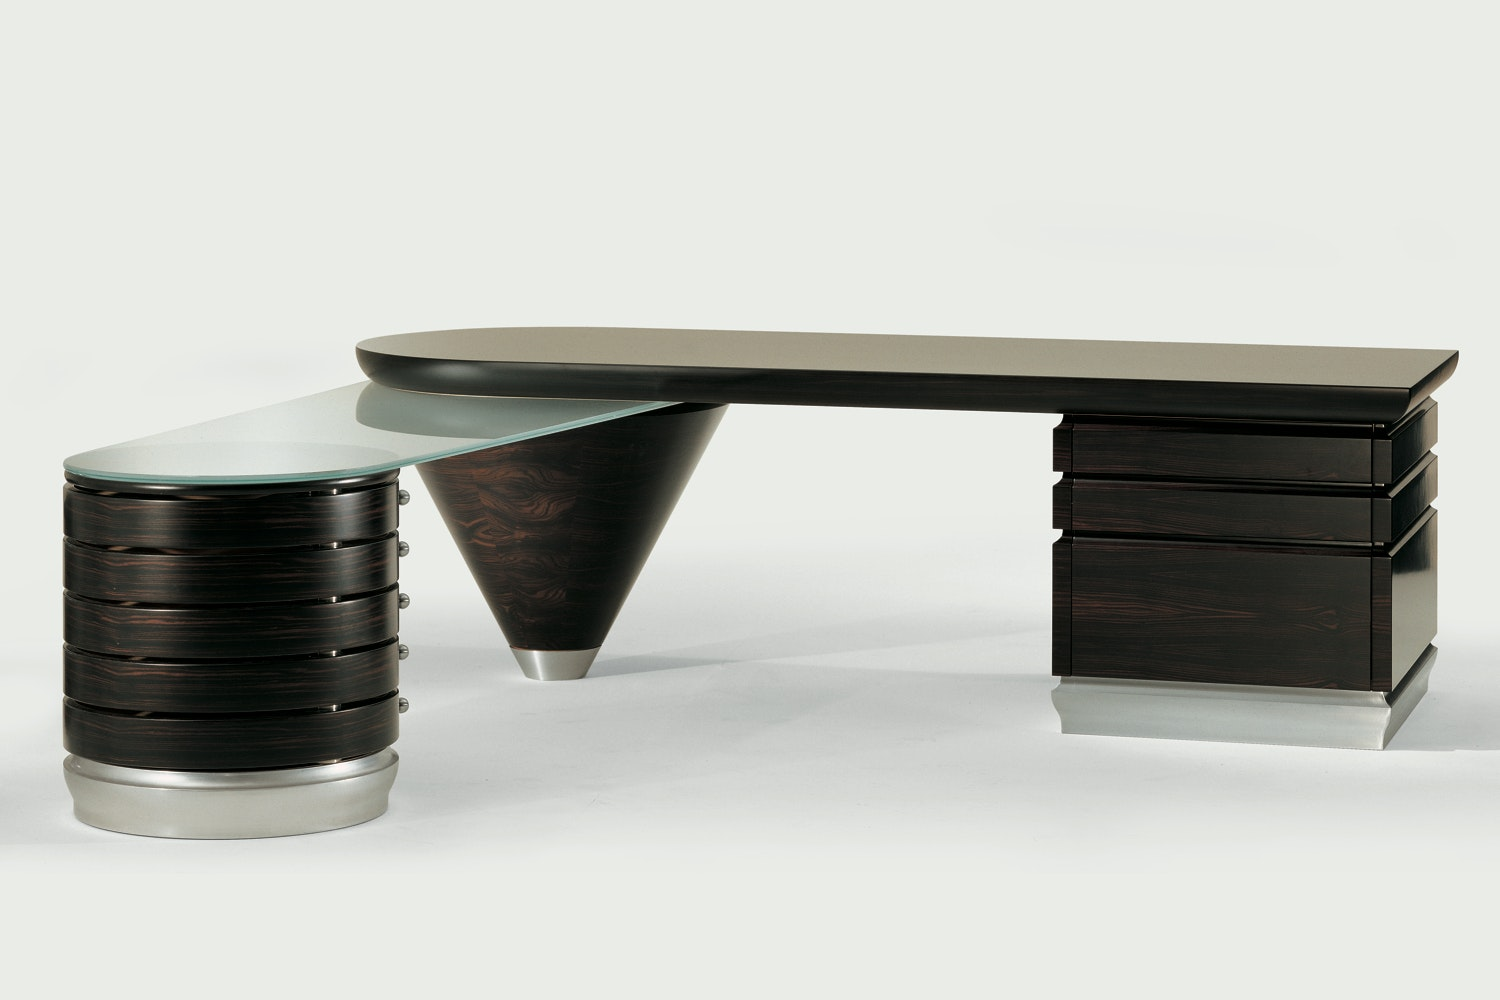 Scriptor Desk by Leon Krier for Giorgetti